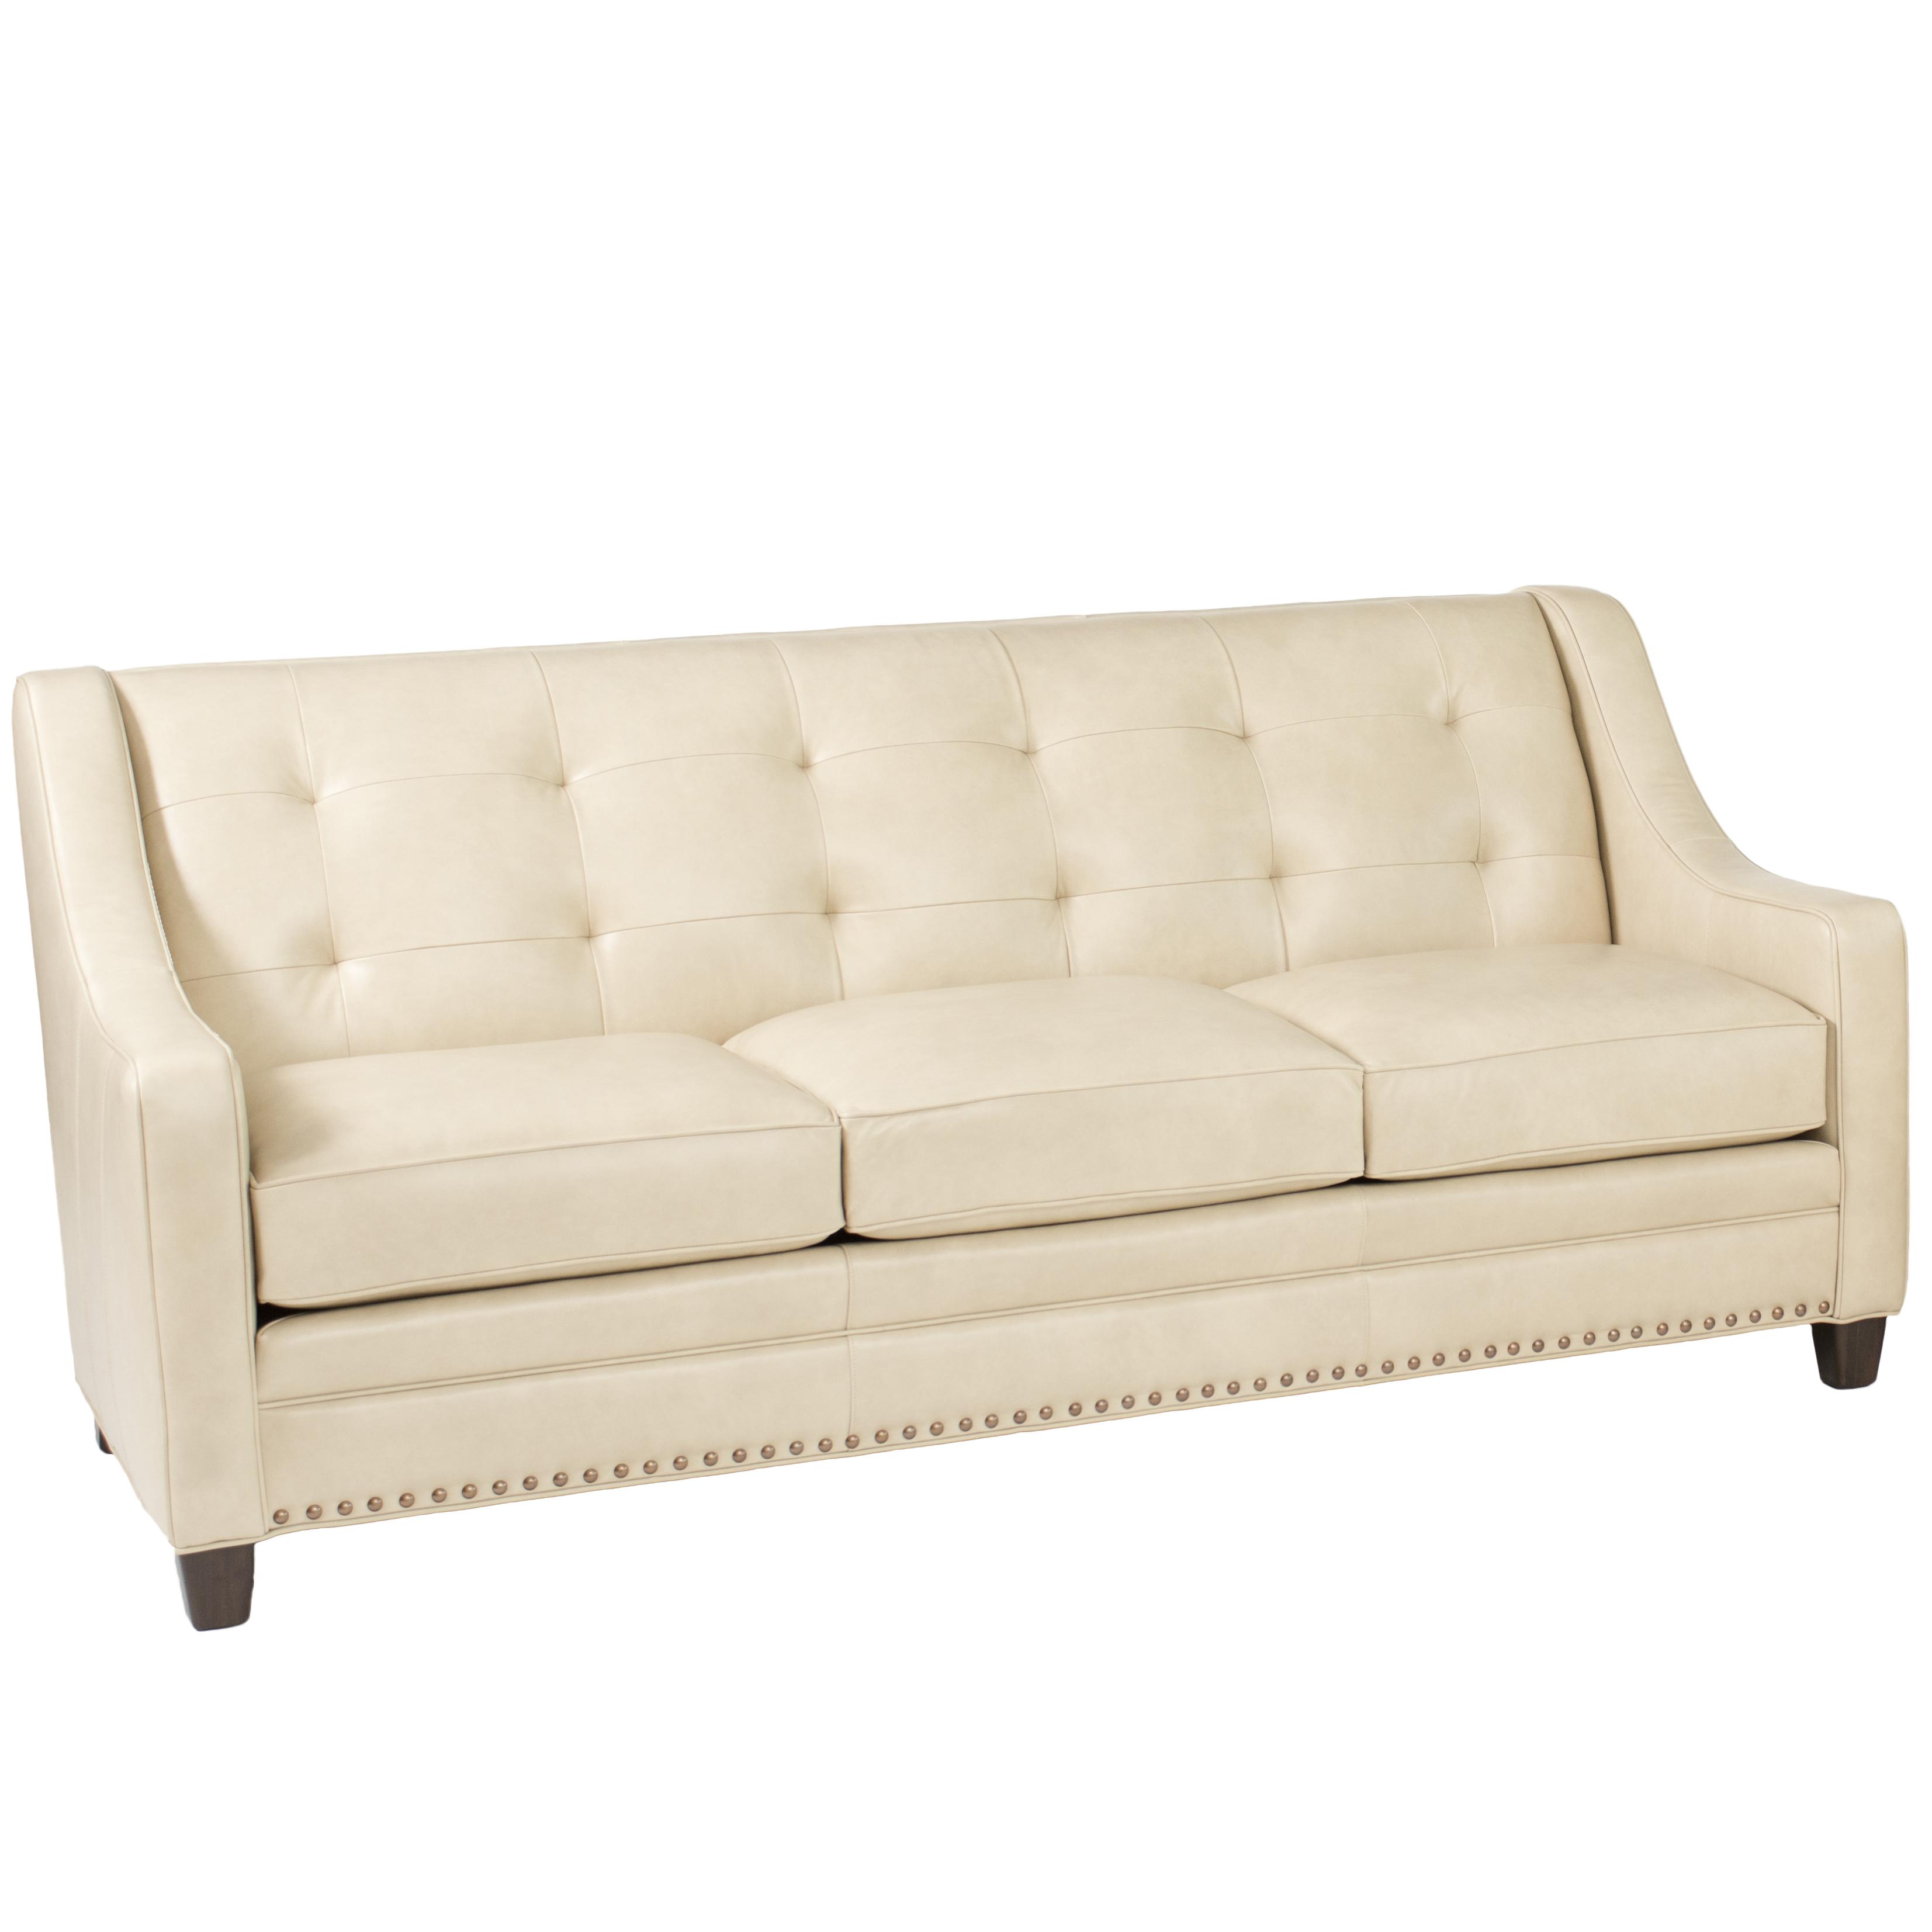 72 lancaster leather sofa roll arm bed transitional with tufting by smith brothers | wolf ...